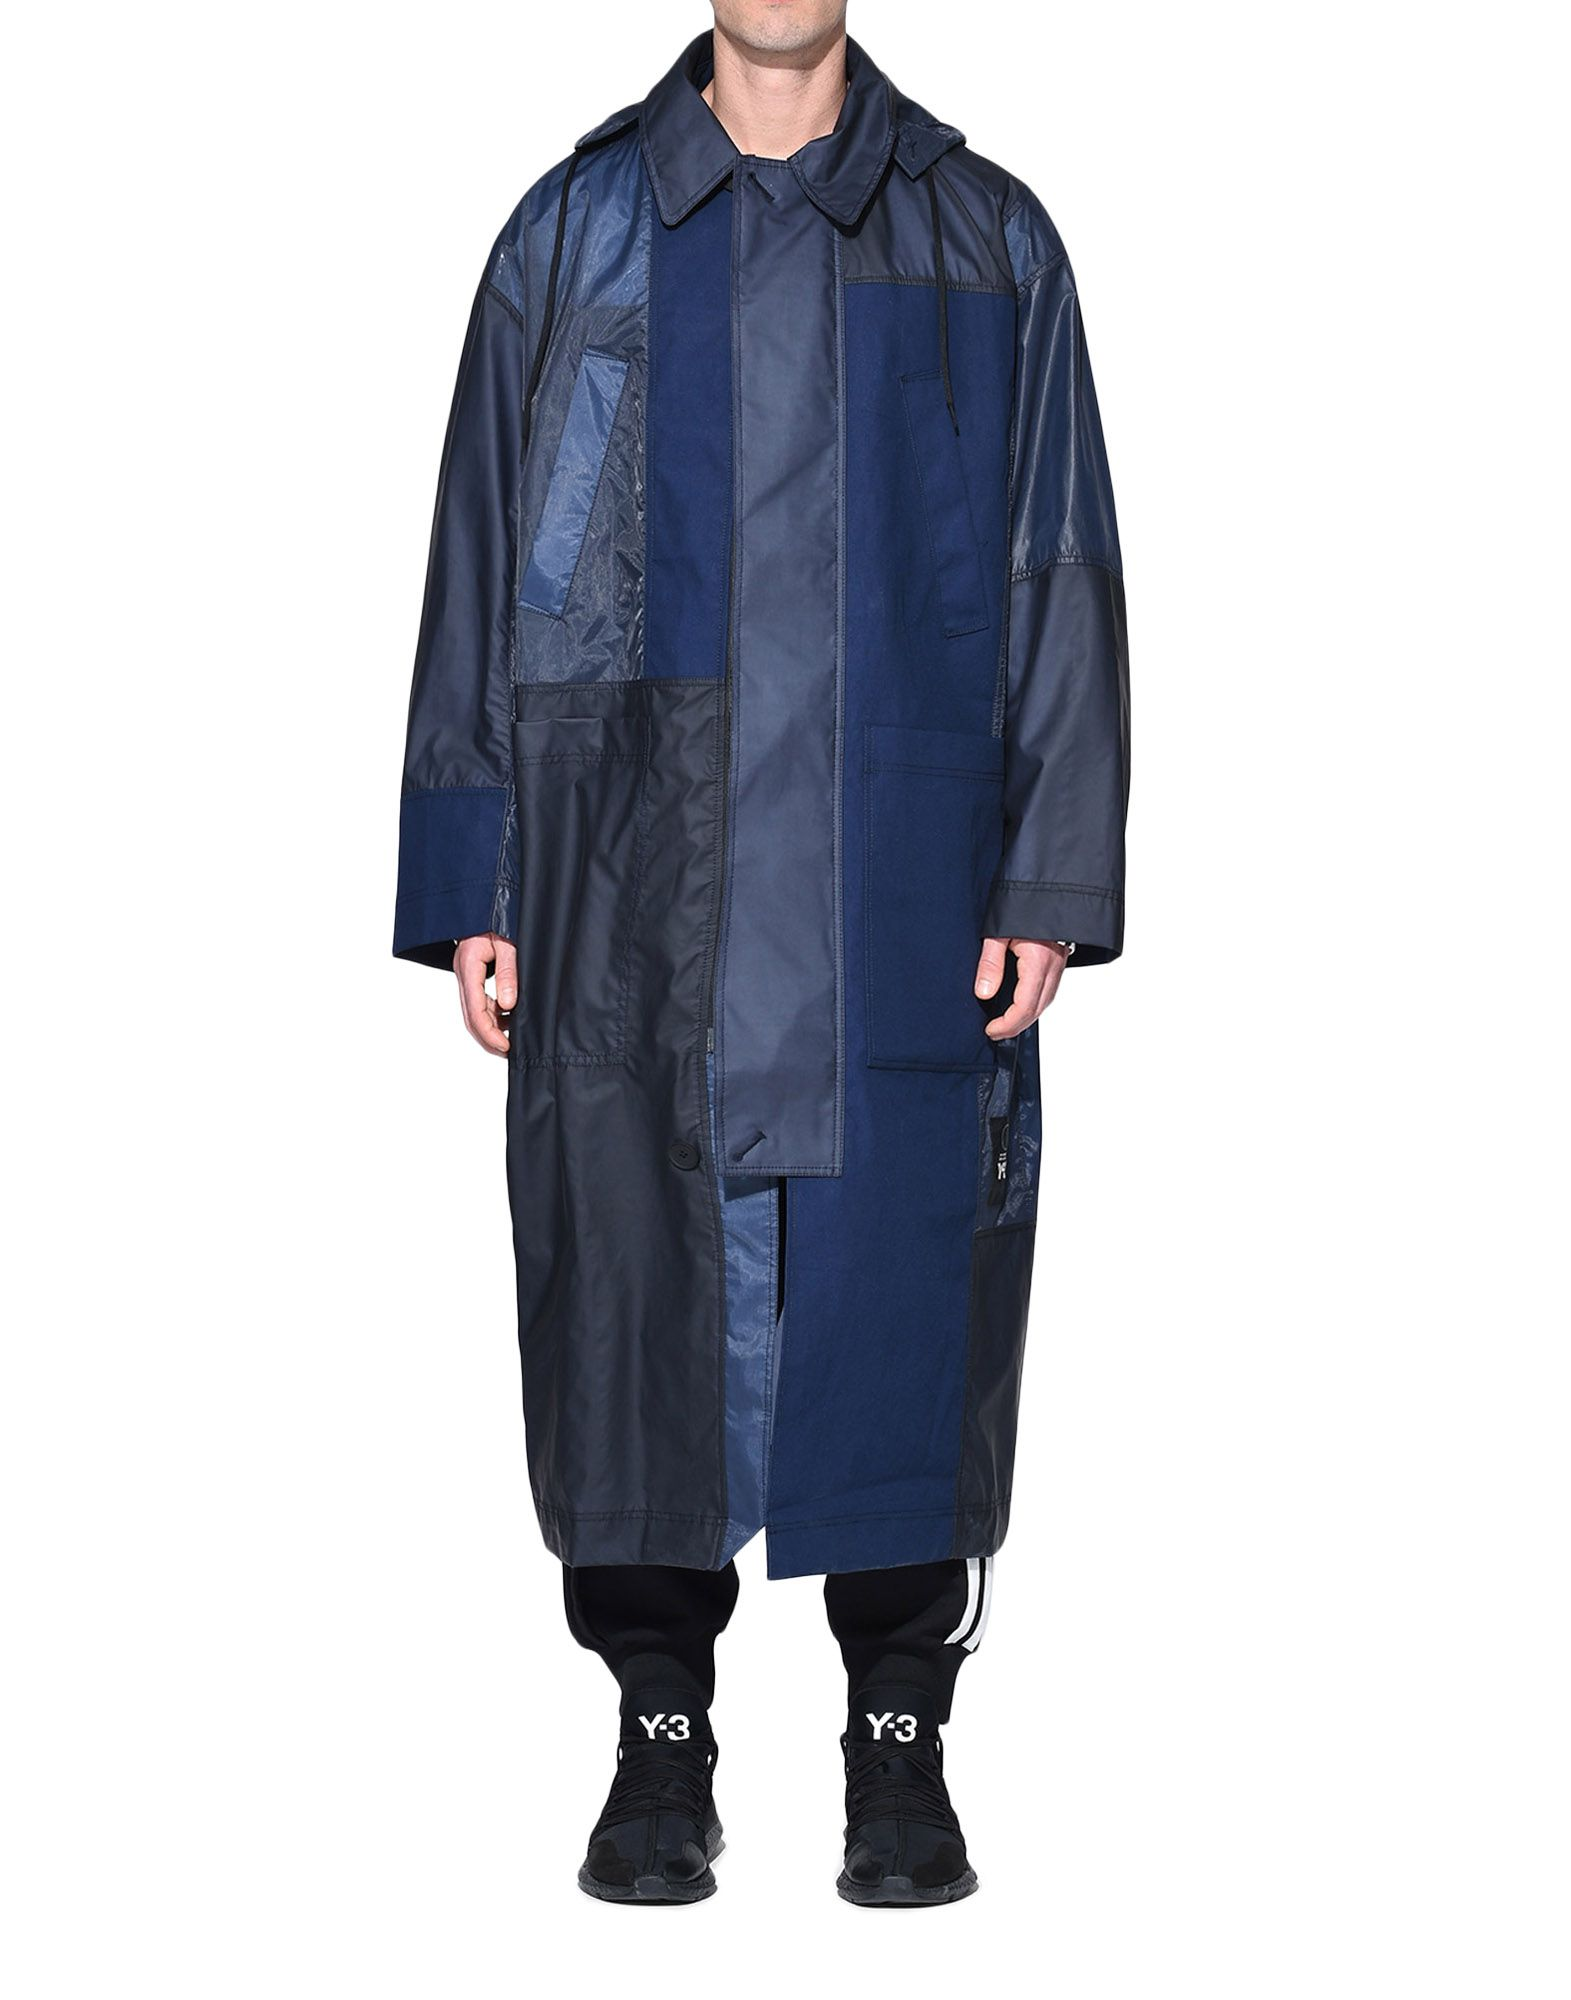 Y-3 Y-3 Patchwork Long Coat Coat Man r